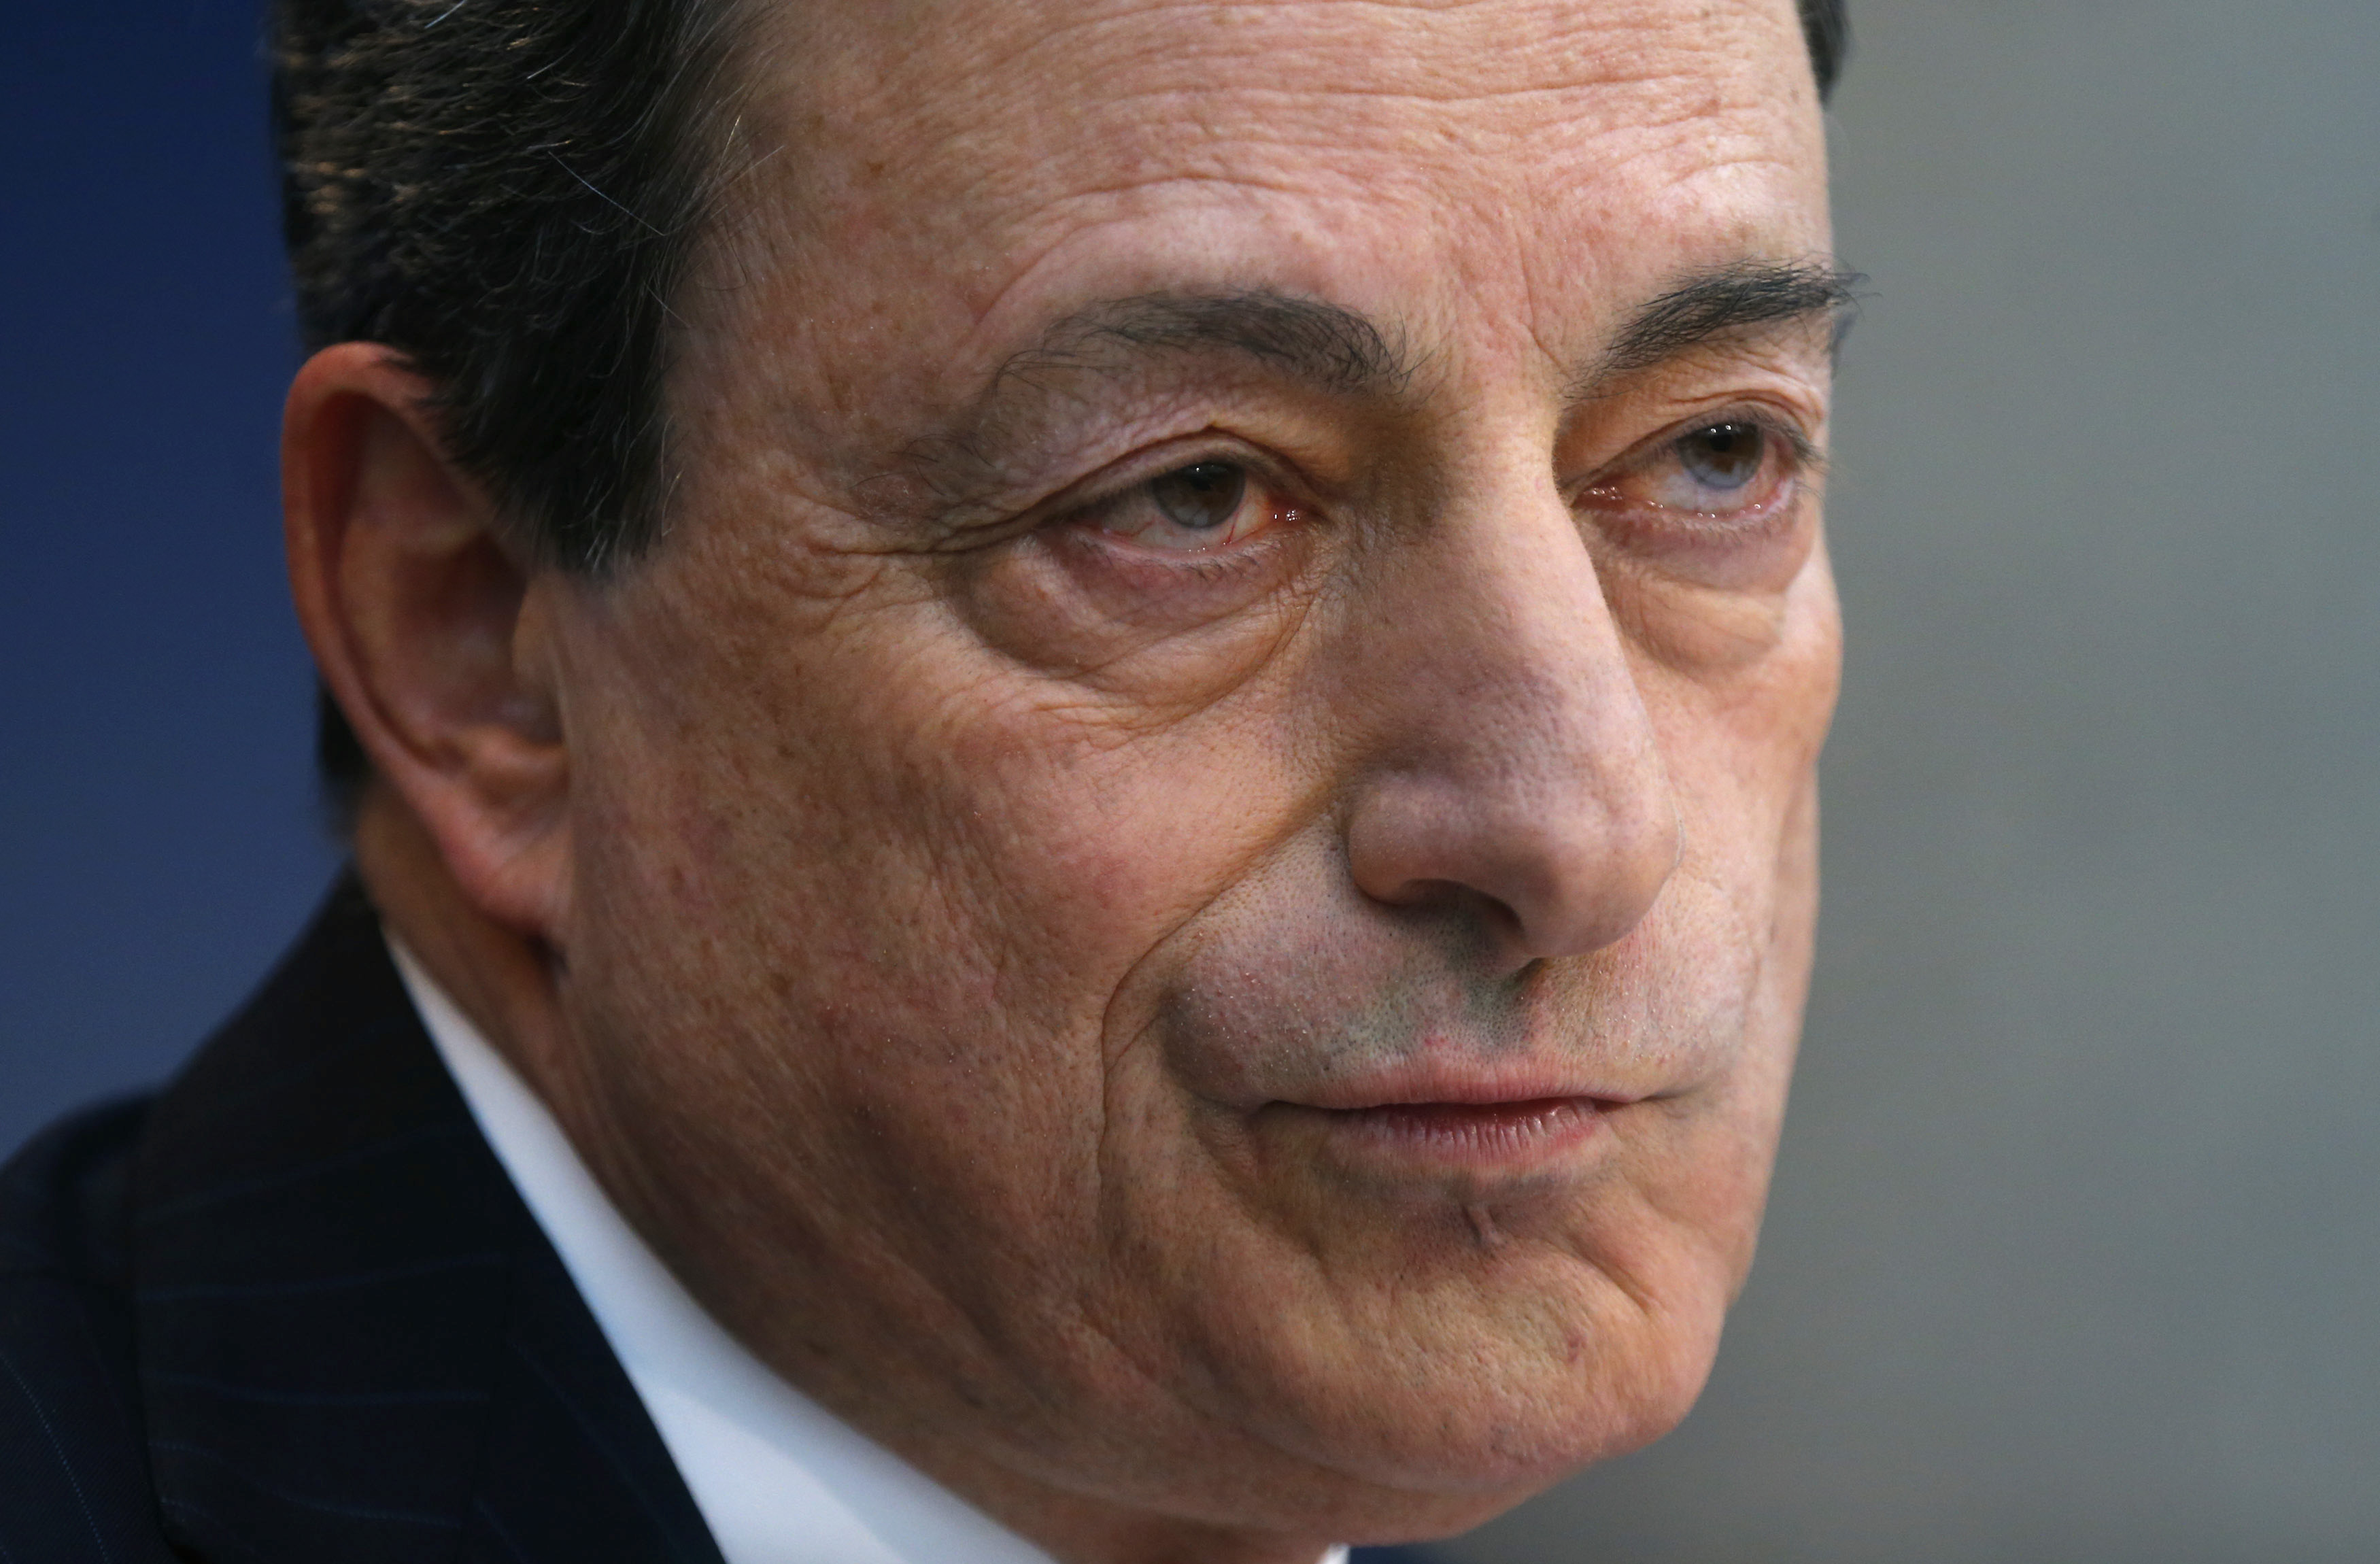 European Central Bank President Draghi frowns during the monthly ECB news conference in Frankfurt